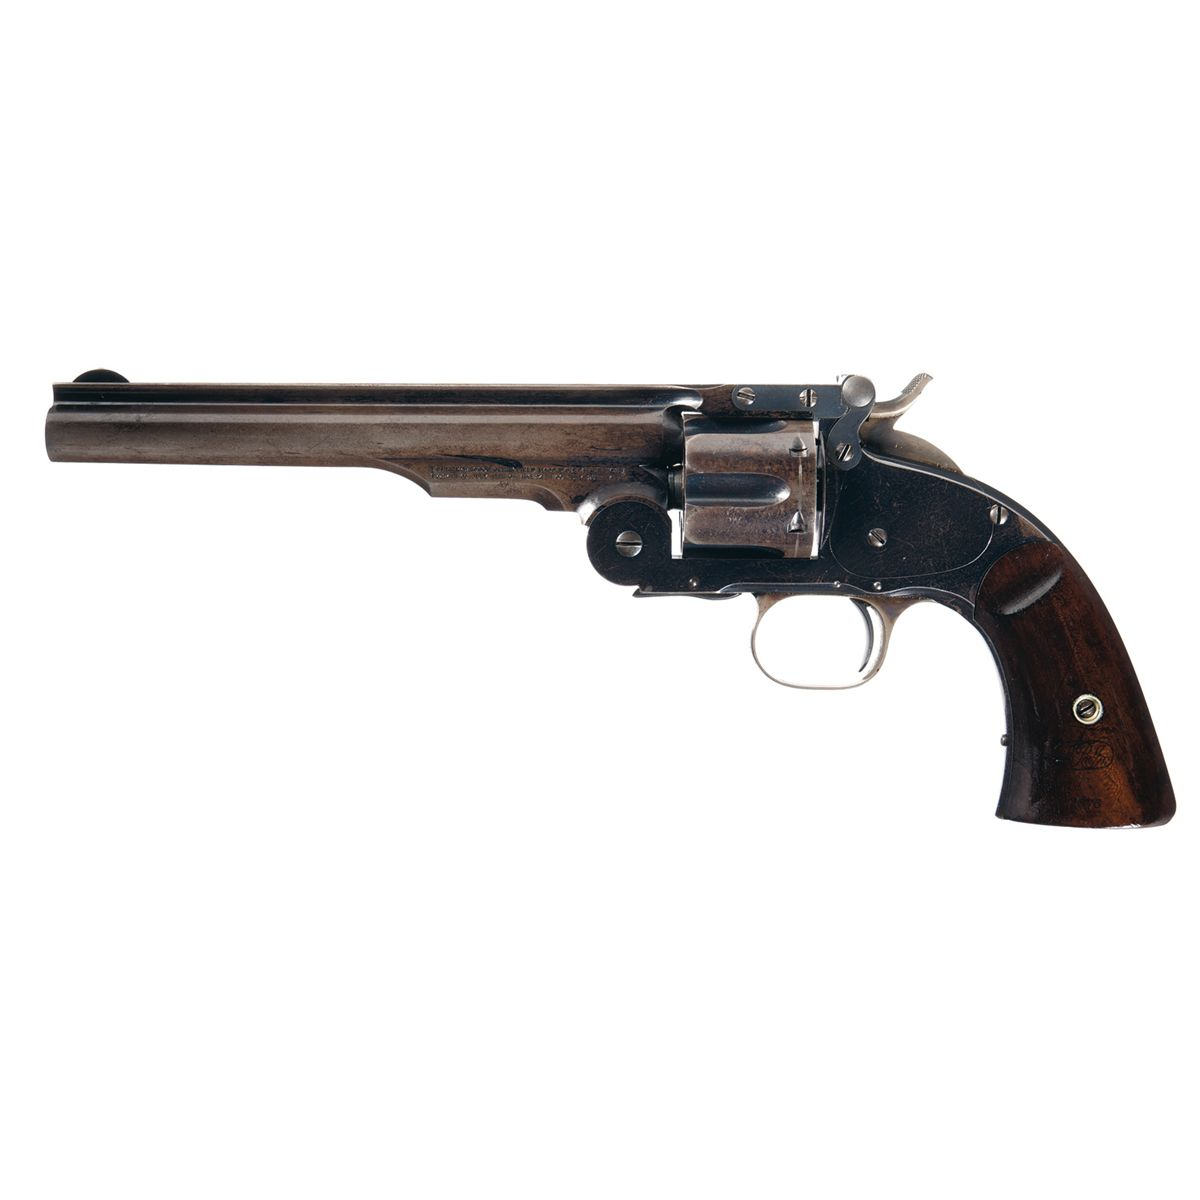 Excellent Smith & Wesson U.S. Contract Second Model